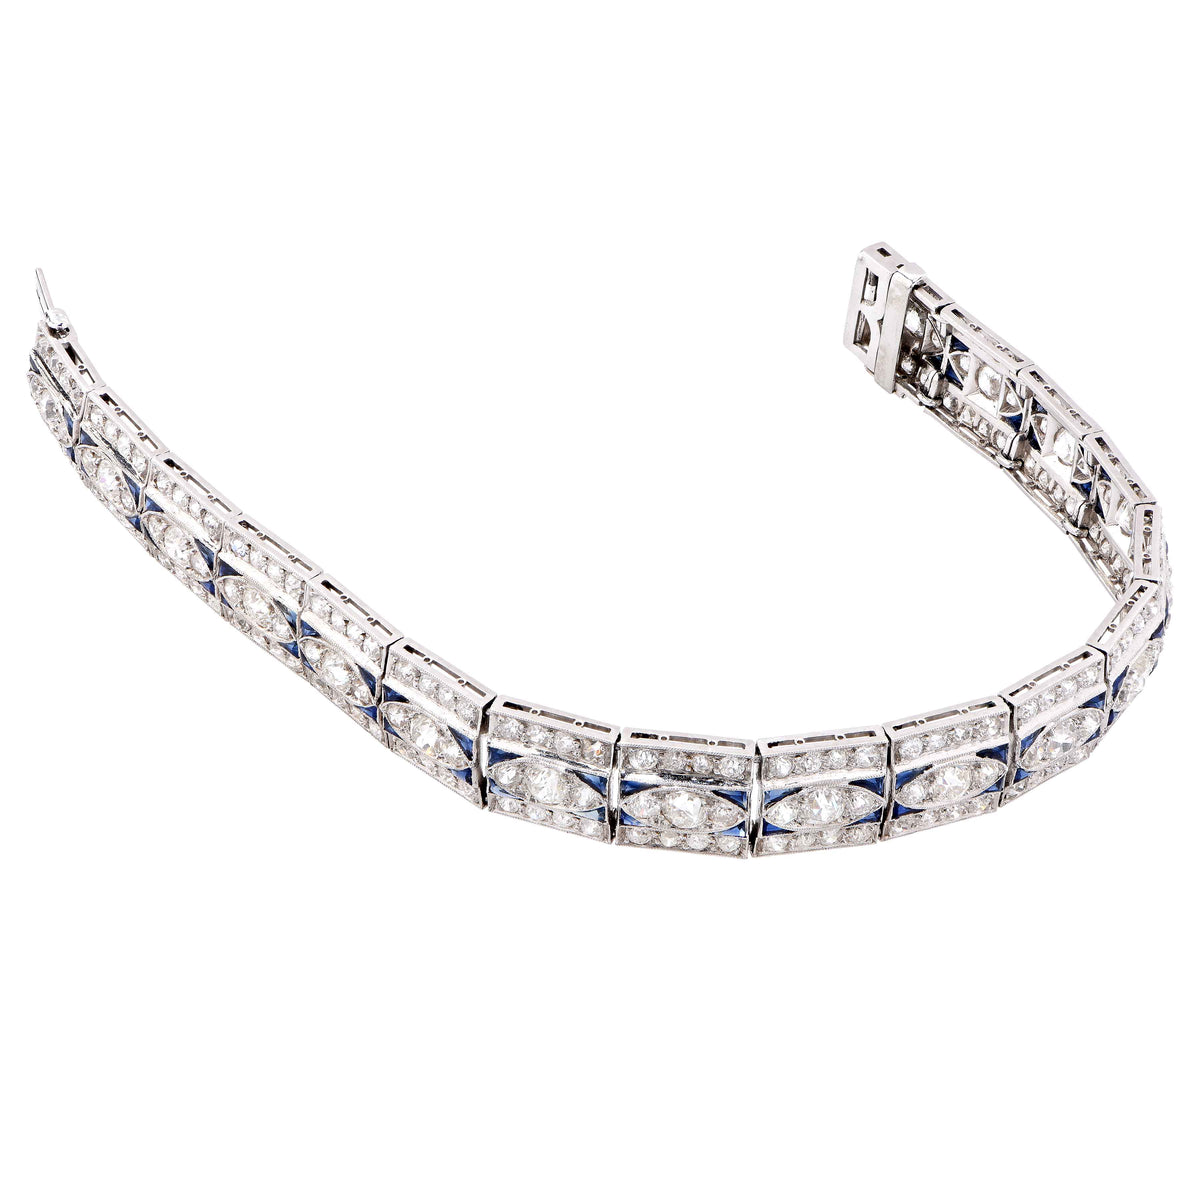 Art Deco 5.5 Carat Diamond and 2 Carat Sapphire Platinum Bracelet